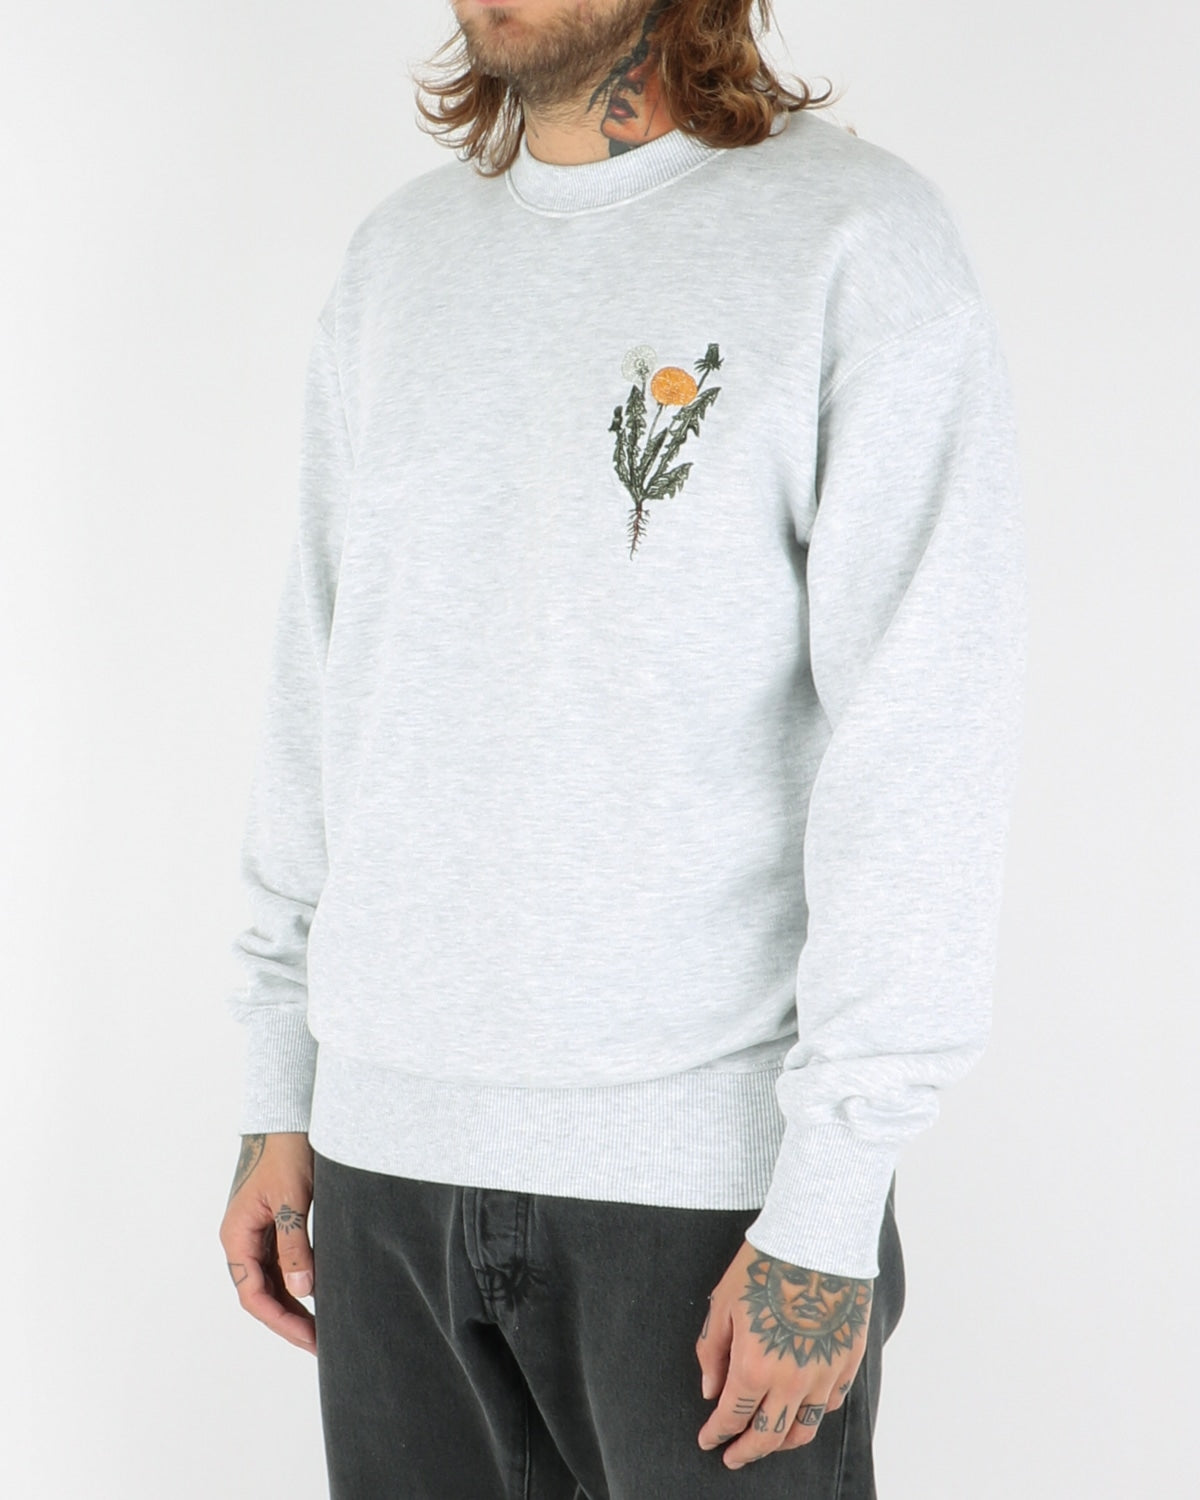 han kjobenhavn_casual crew sweatshirt flower_light grey_view_2_3